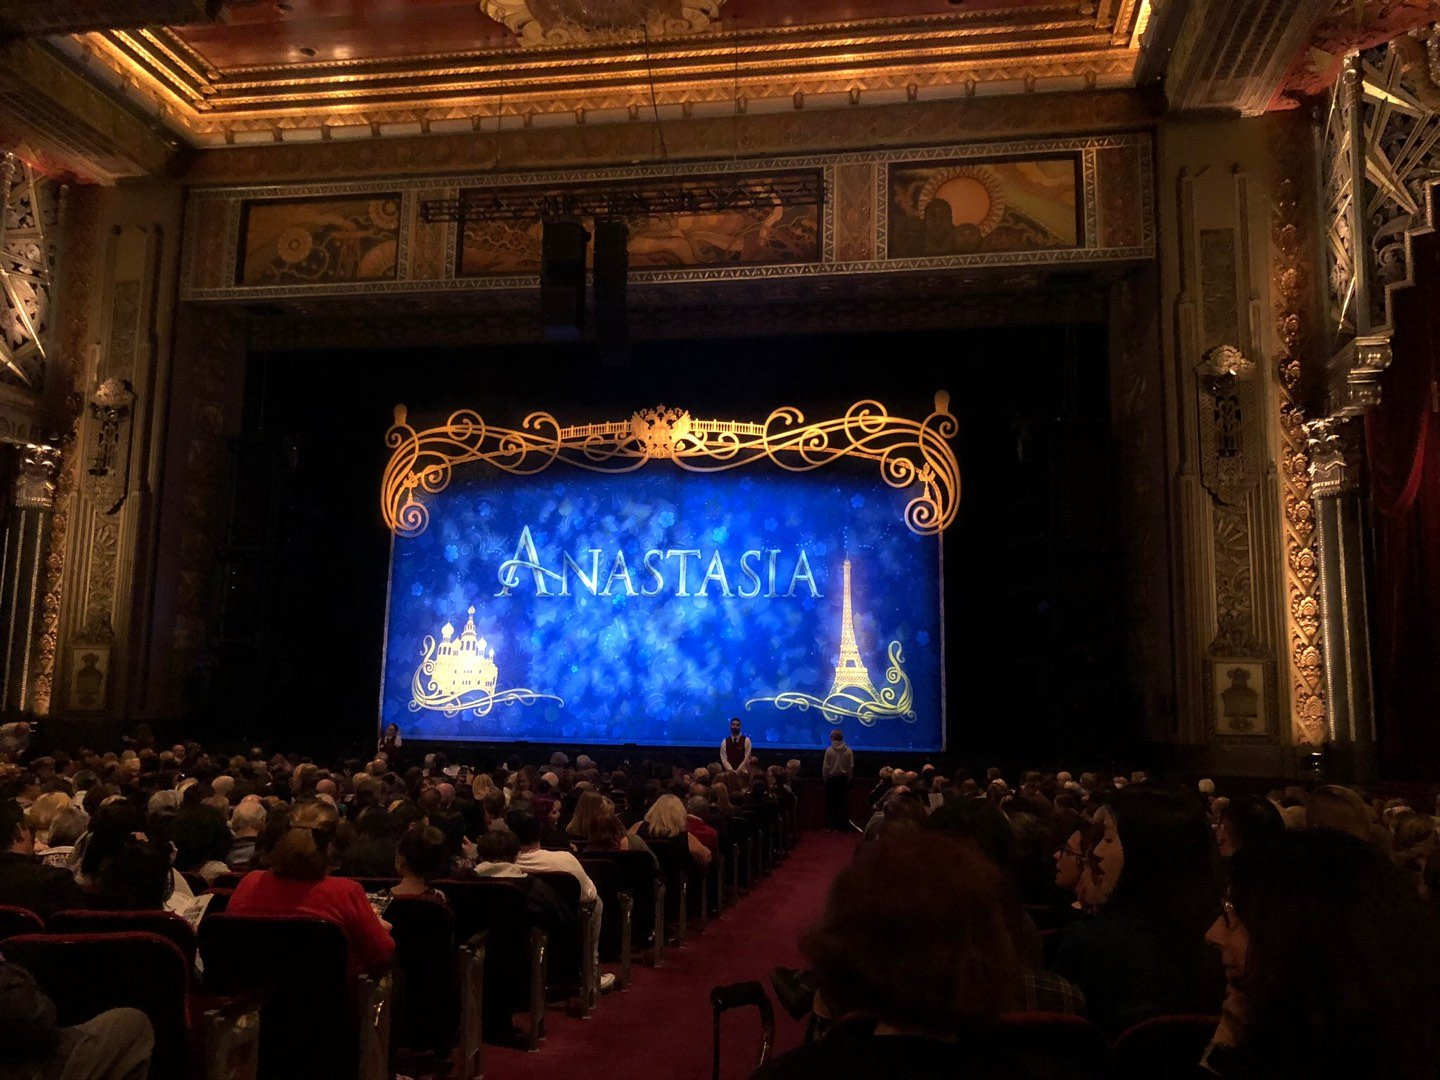 Hollywood Pantages Theatre Section Orchestra RC Row X Seat 201